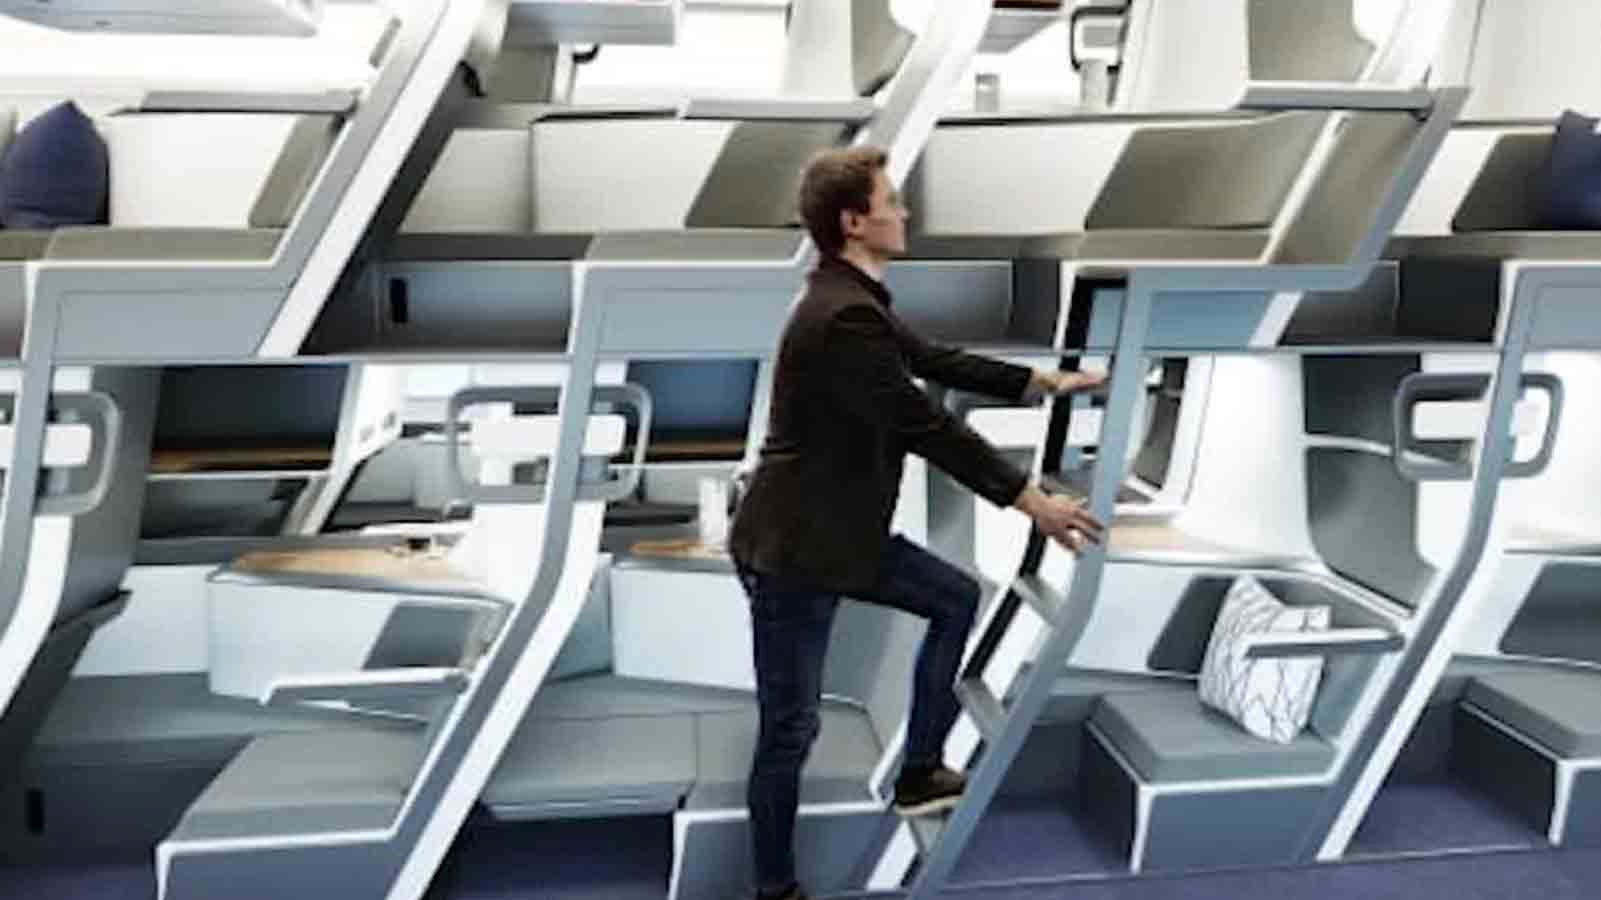 Airline Bunk Beds Could Be a Thing in the Future